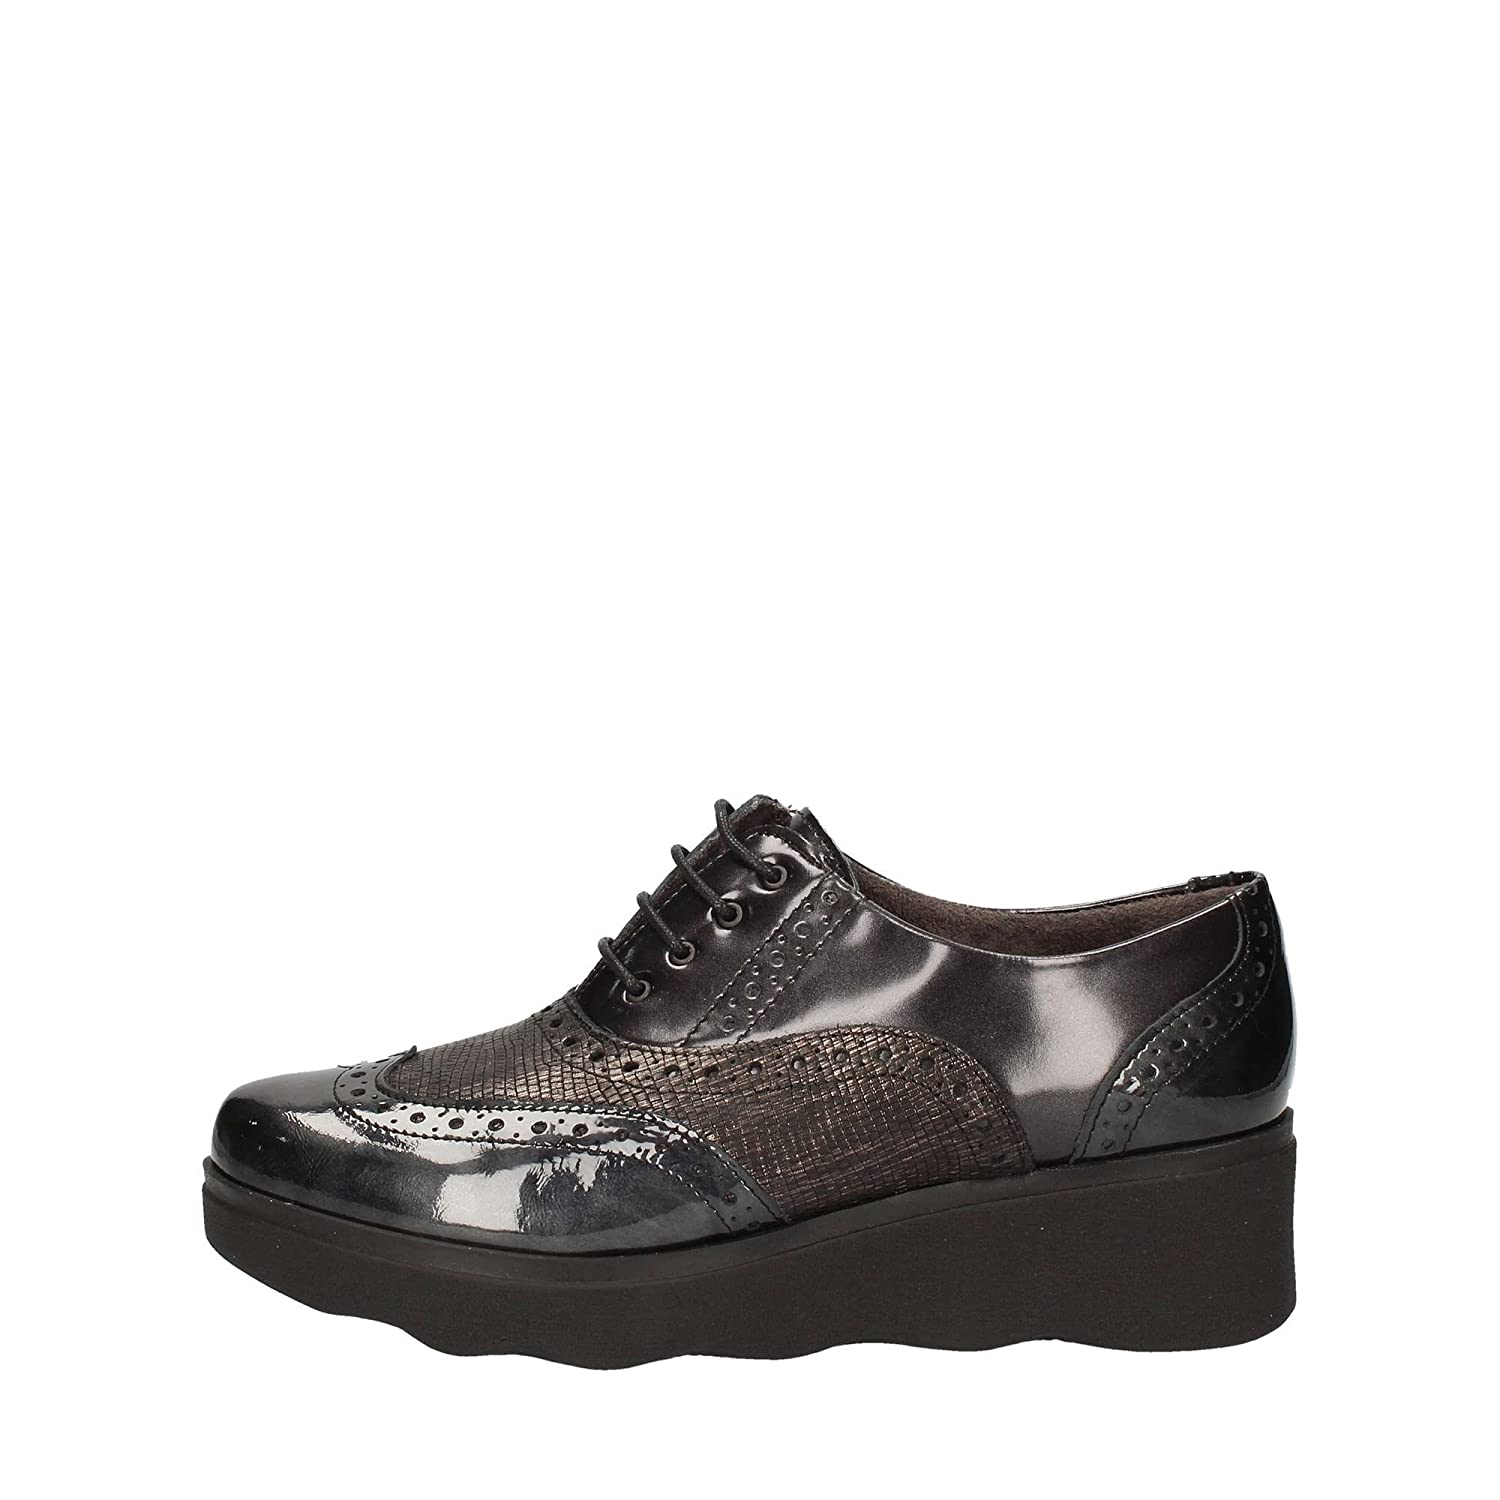 PITILLOS 1321 Lace B07H3NYQF1 Noir up Lace Shoes Femme Noir 0fa8542 - reprogrammed.space